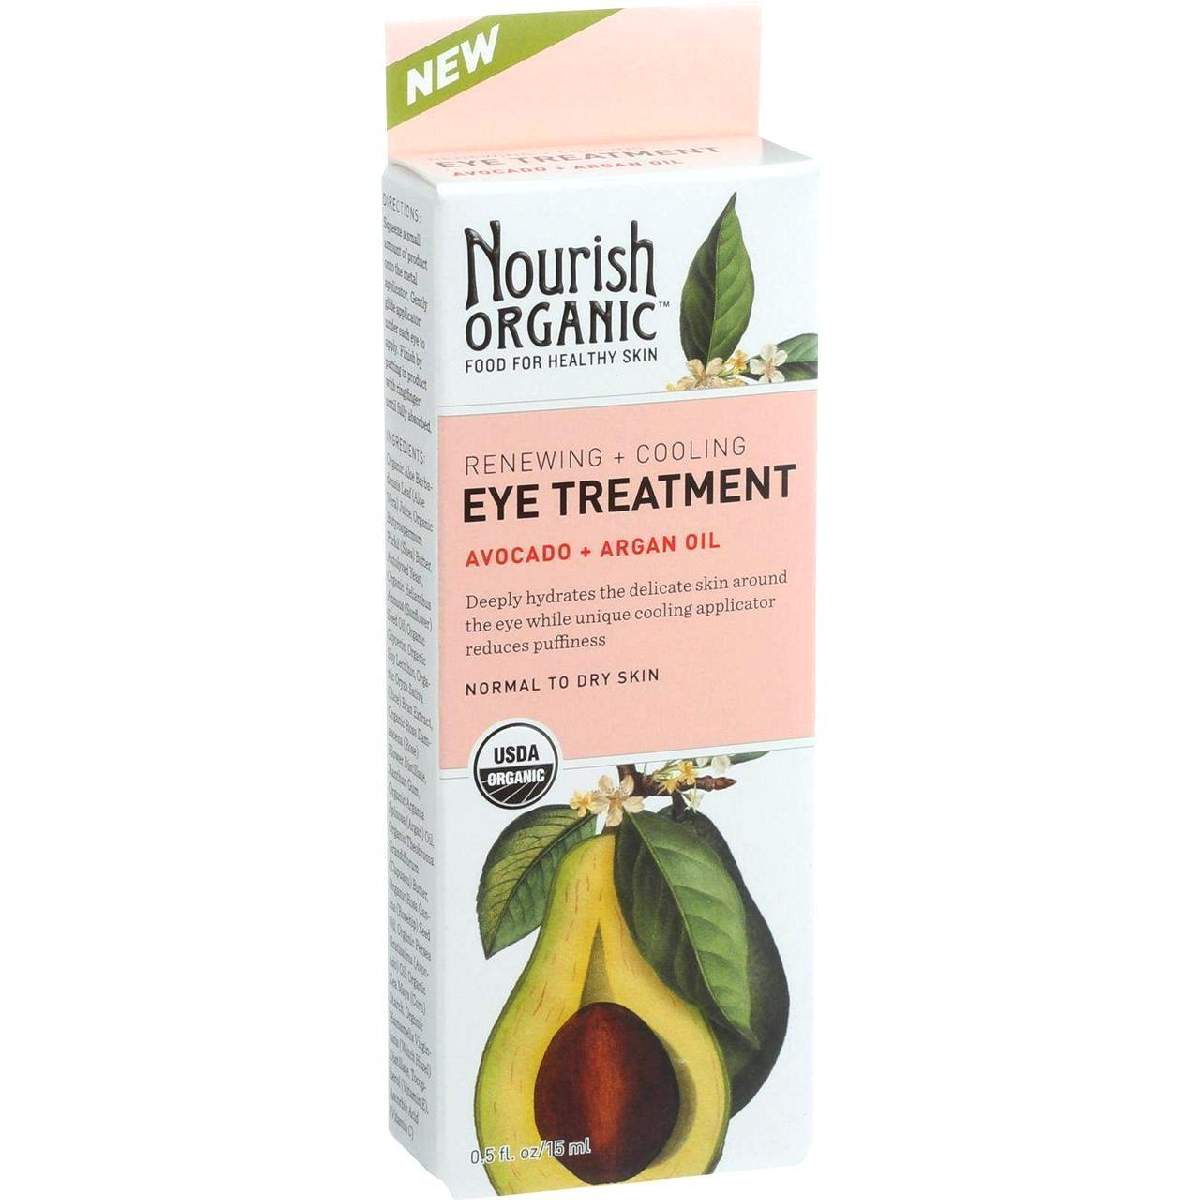 Nourish Organic Eye Treatment Cream - Renewing And Cooling - Avocado Argan Oil - .5 Oz